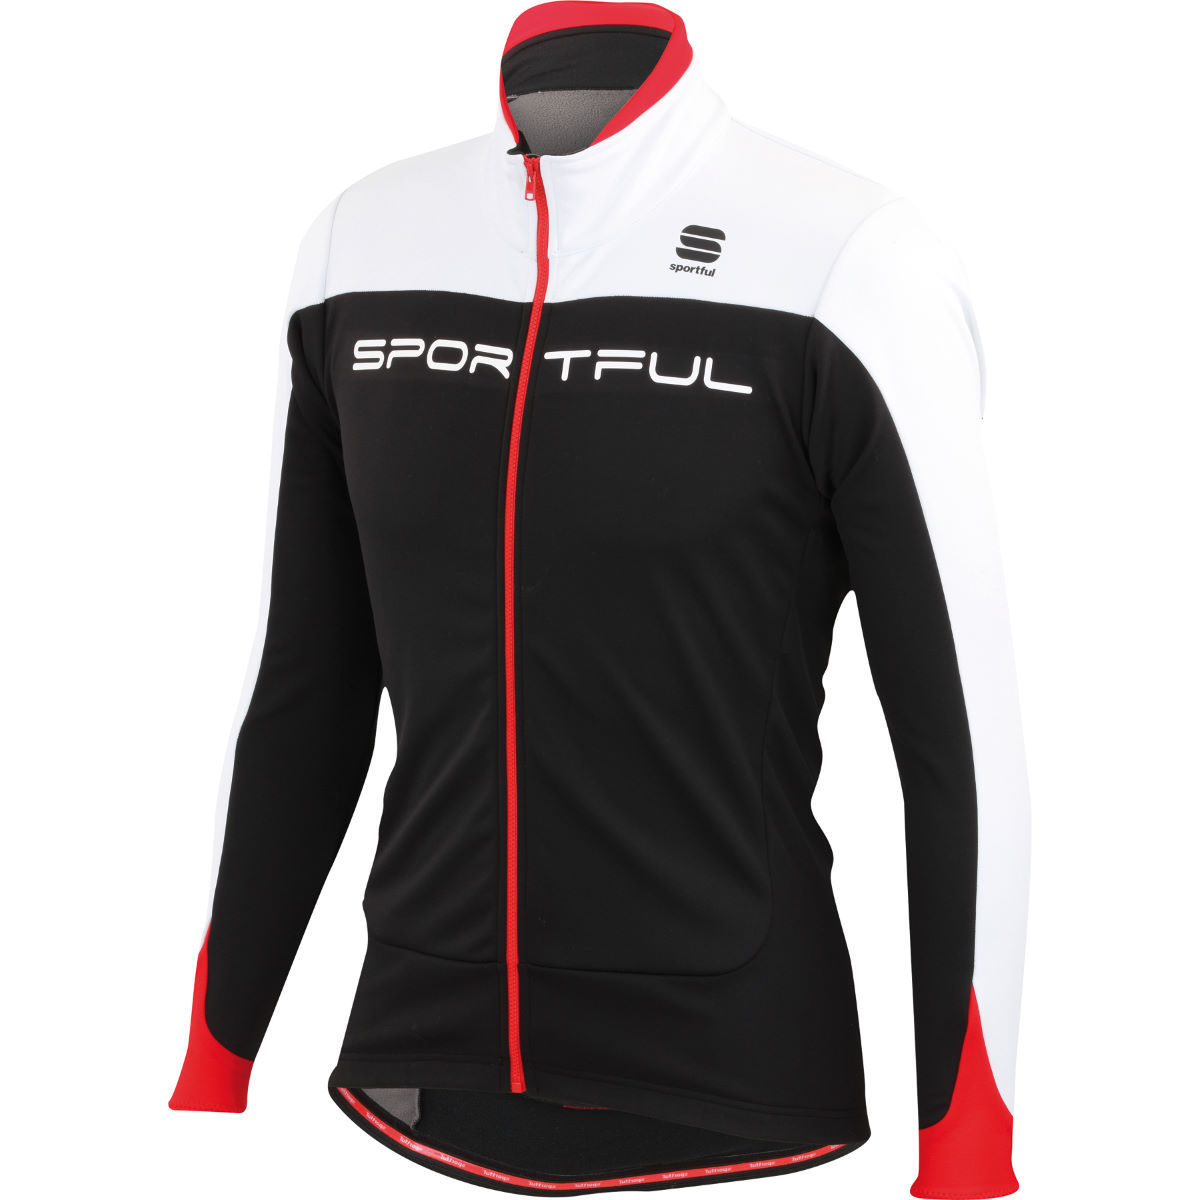 Veste Sportful Flash Softshell - M Black/White/Red Coupe-vents vélo